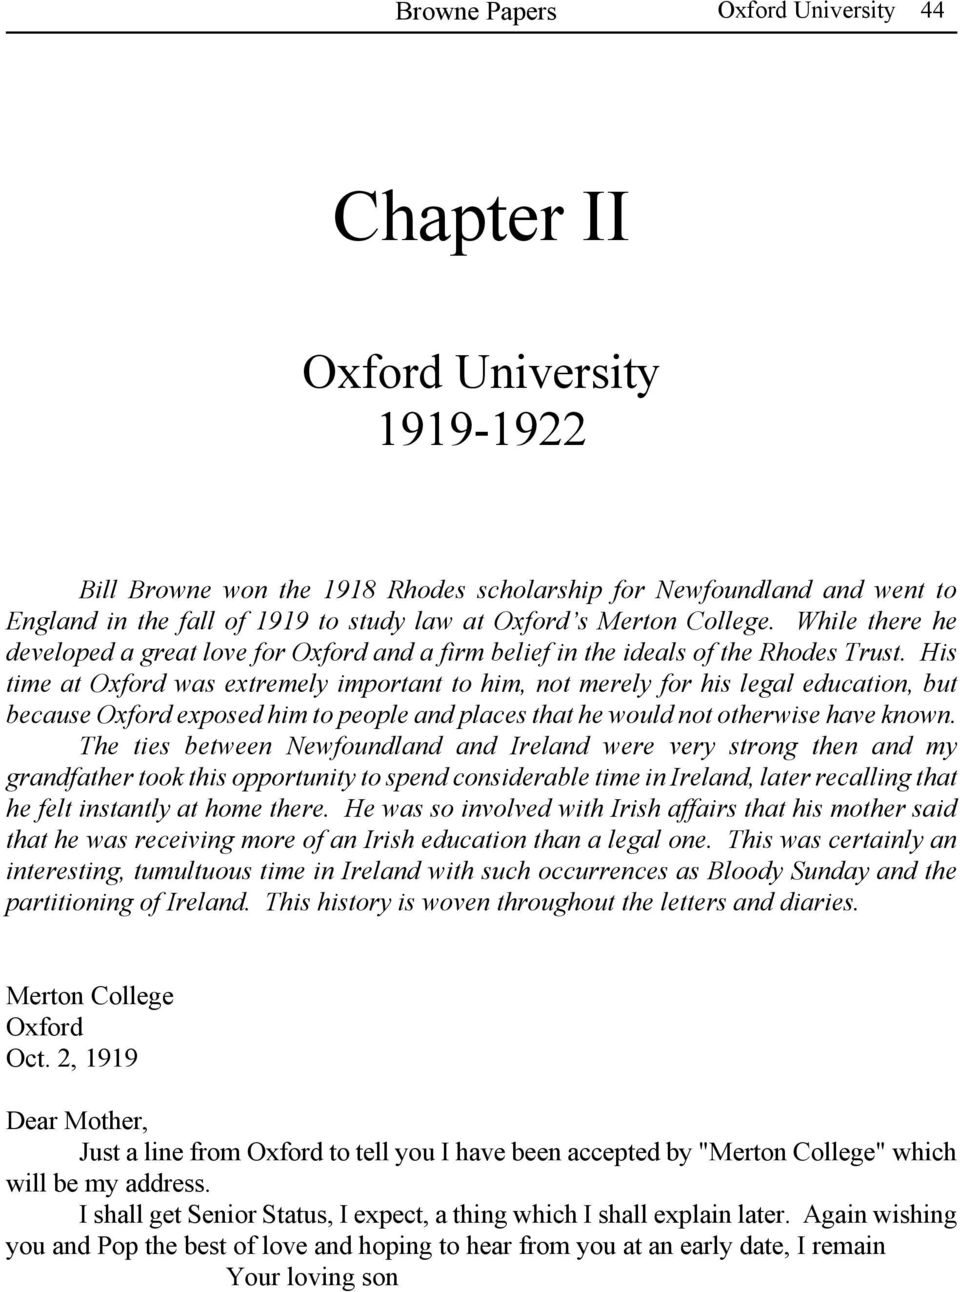 His time at Oxford was extremely important to him, not merely for his legal education, but because Oxford exposed him to people and places that he would not otherwise have known.